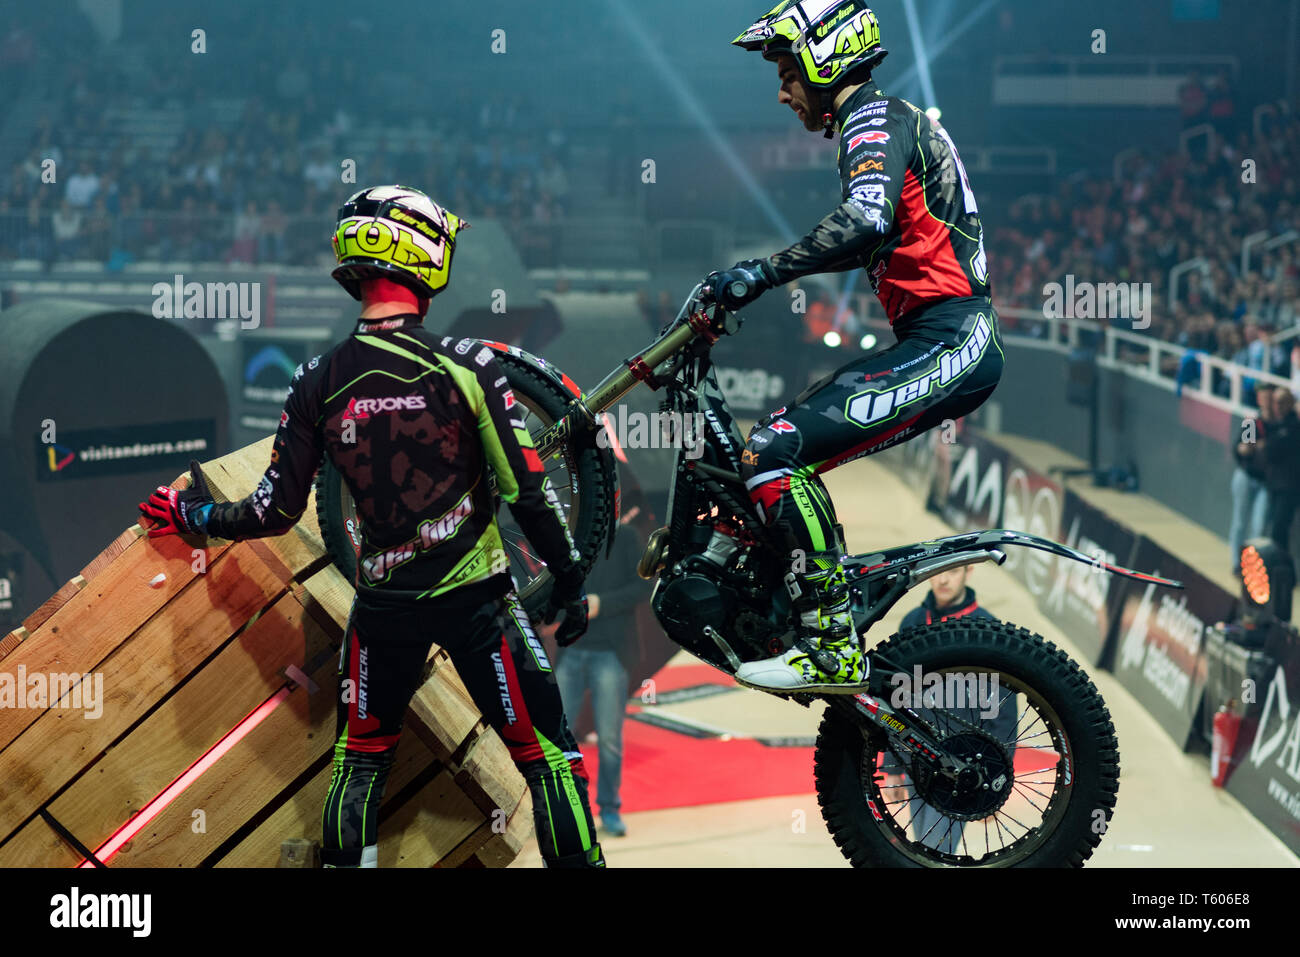 ANDORRA LA VELLA, ANDORRA : 2019 27 APRIL :  JORGE CASALES (SPAIN) takes part in the  FIM X-TRIAL WORLD CHAMPIONSHIP ANDORRA LA VELLA  takes part in t Stock Photo